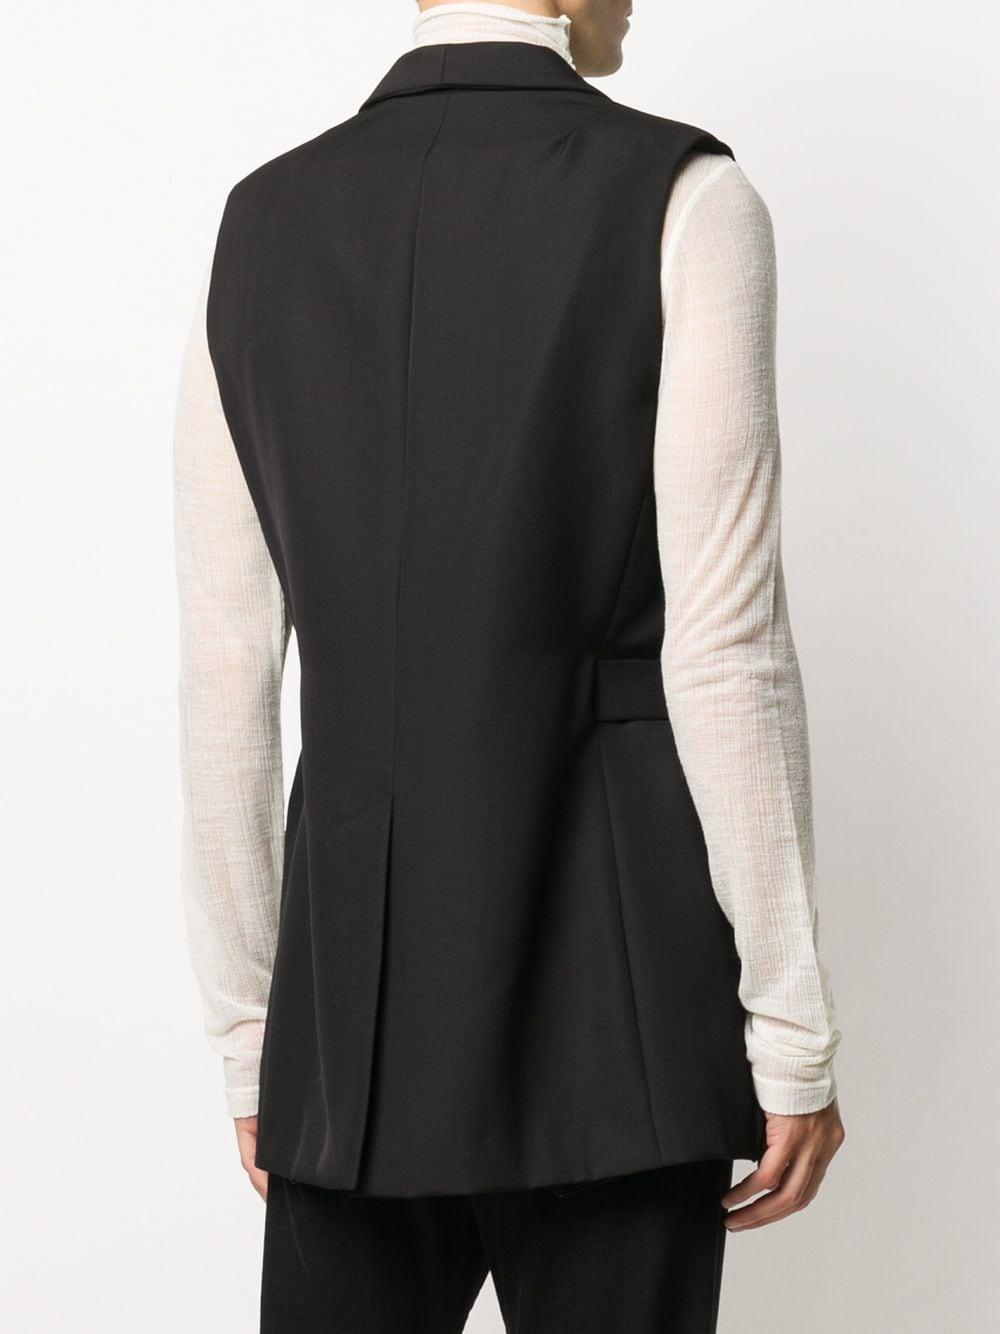 Giacca smanicata ANN DEMEULEMEESTER | Giacca | 2008-3150-187099